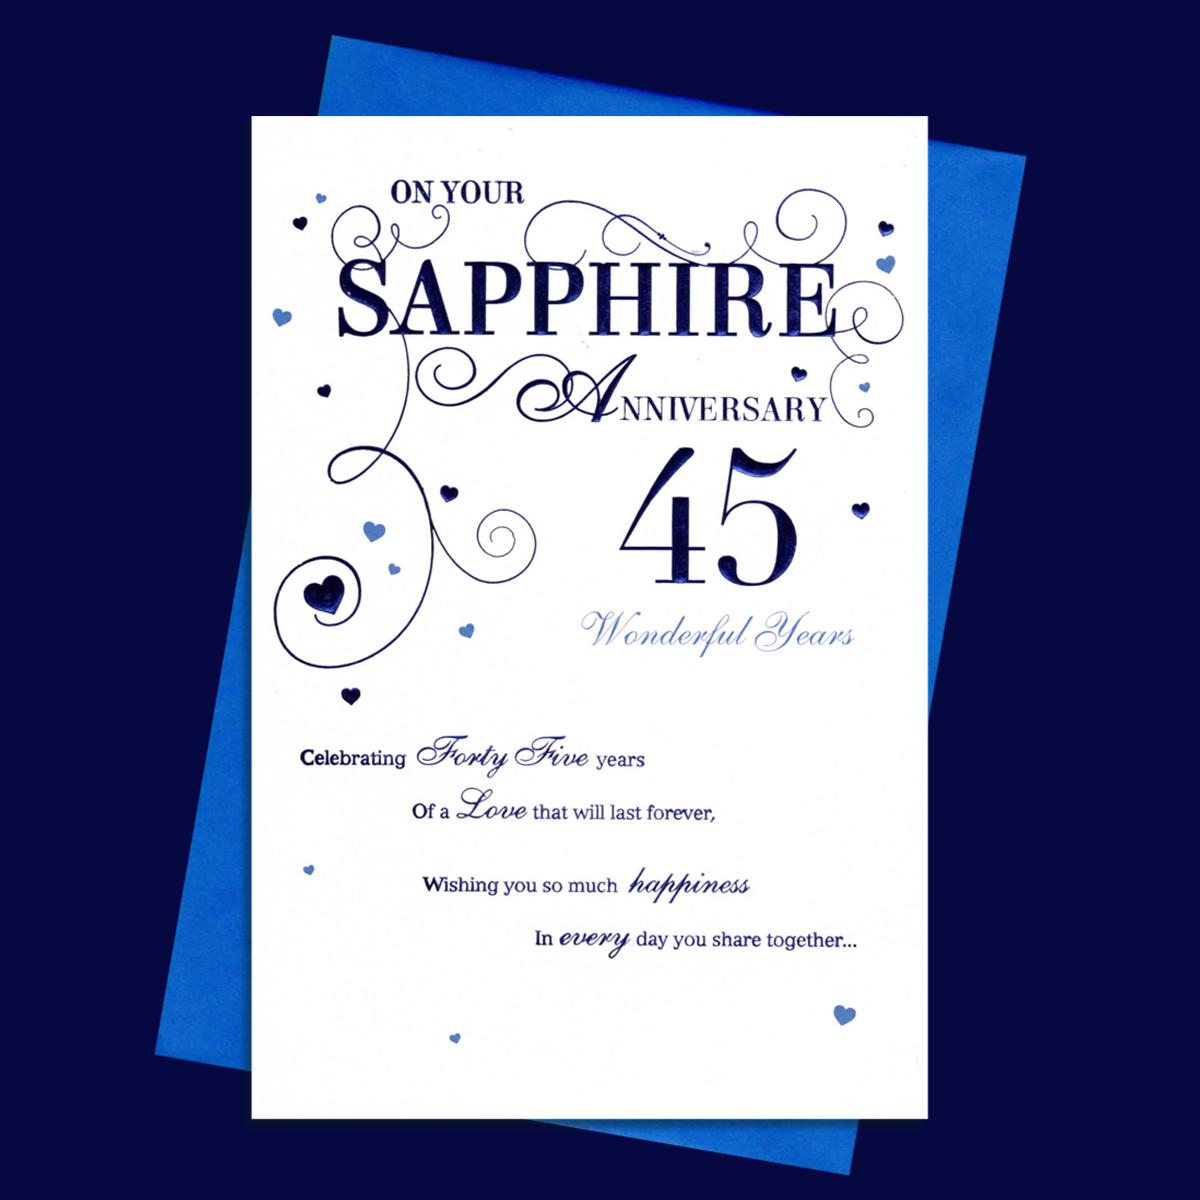 On Your Sapphire Anniversary Card Alongside Its Envelope